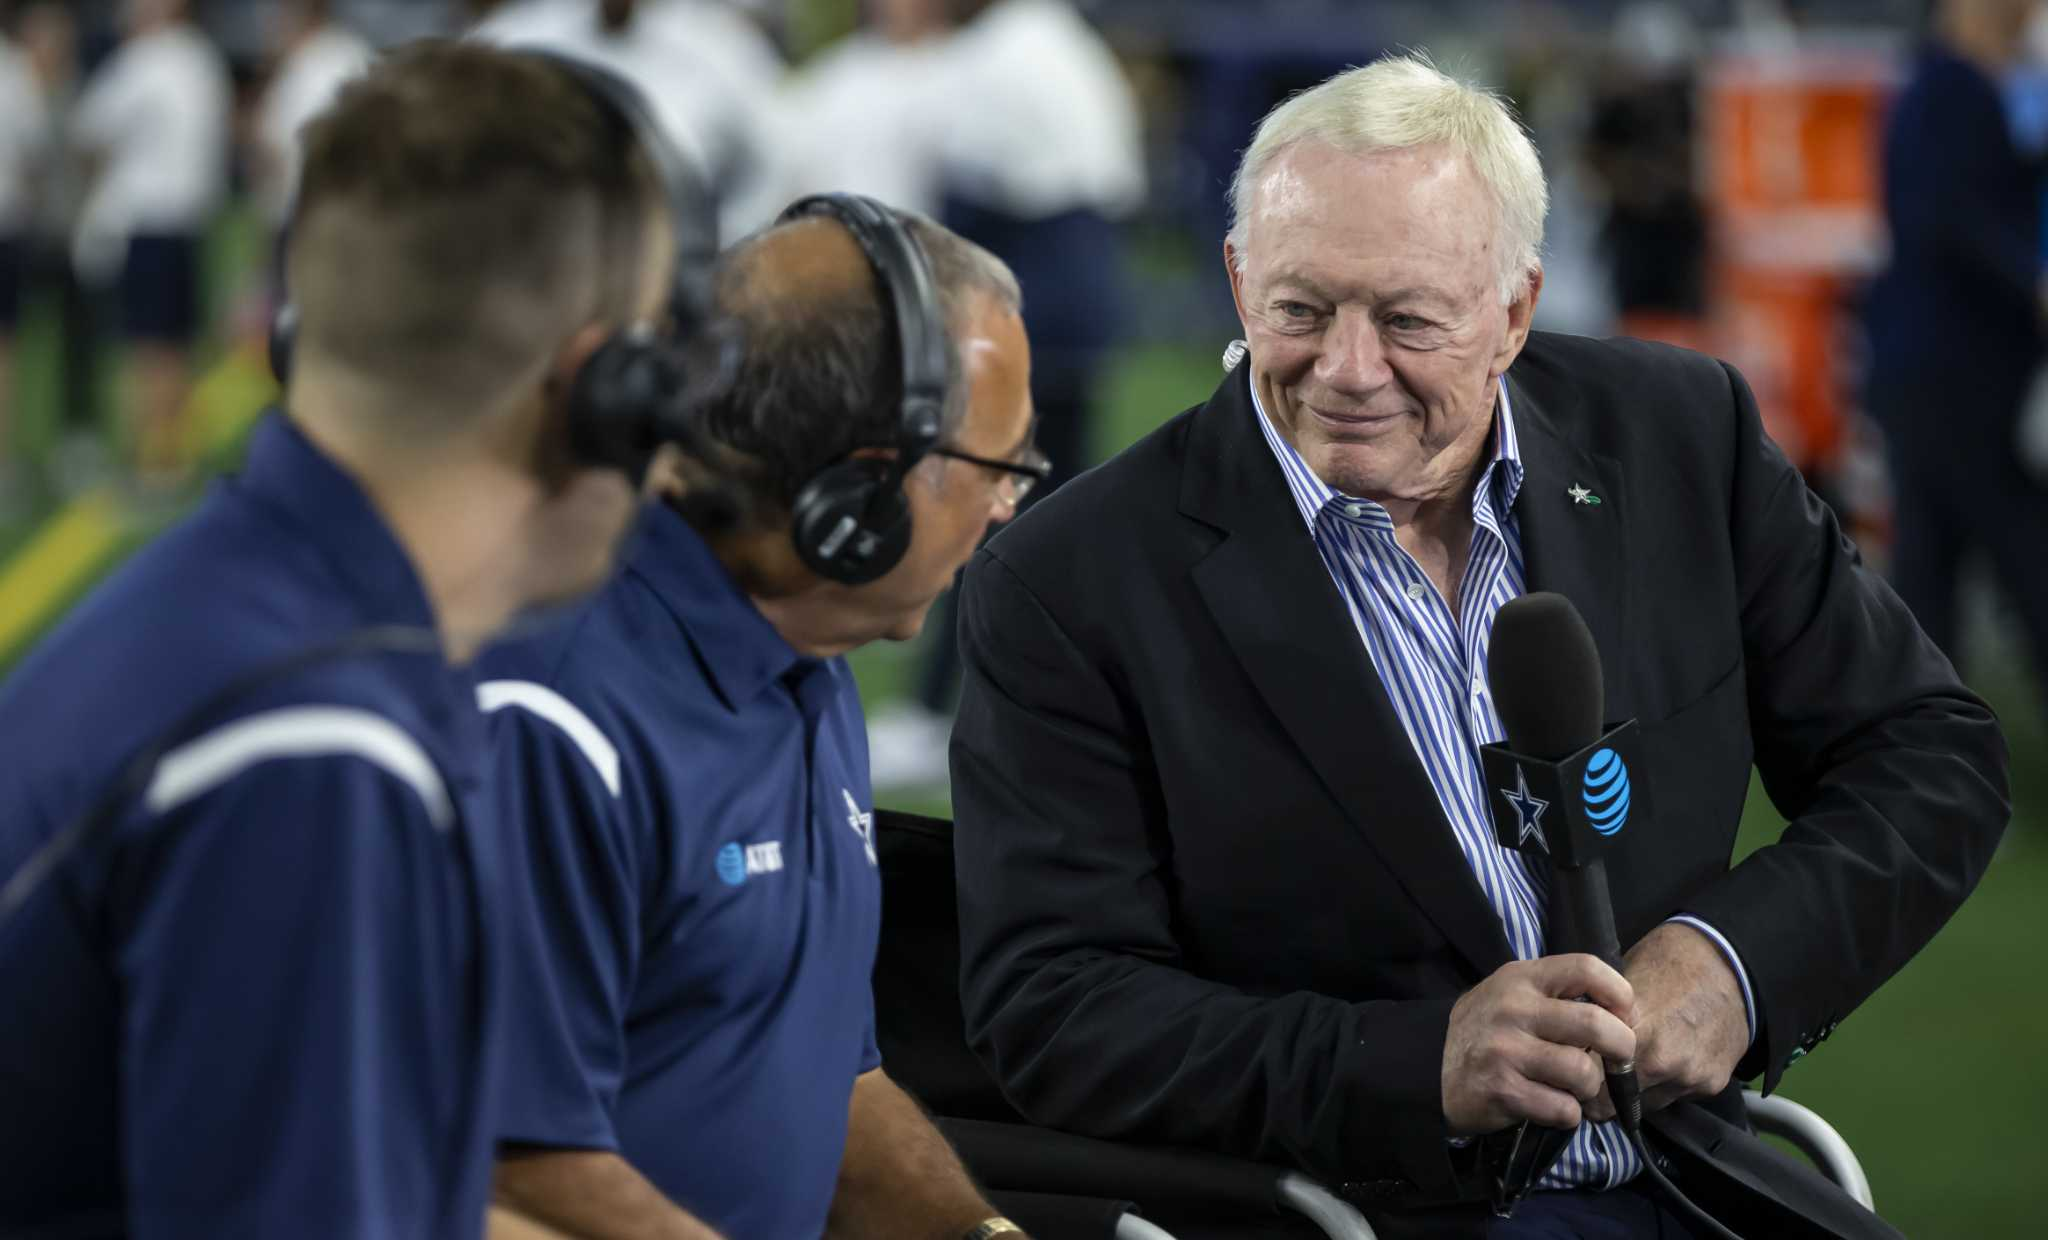 Cowboys' Jerry Jones has perfect answer about COVID-19 vaccine